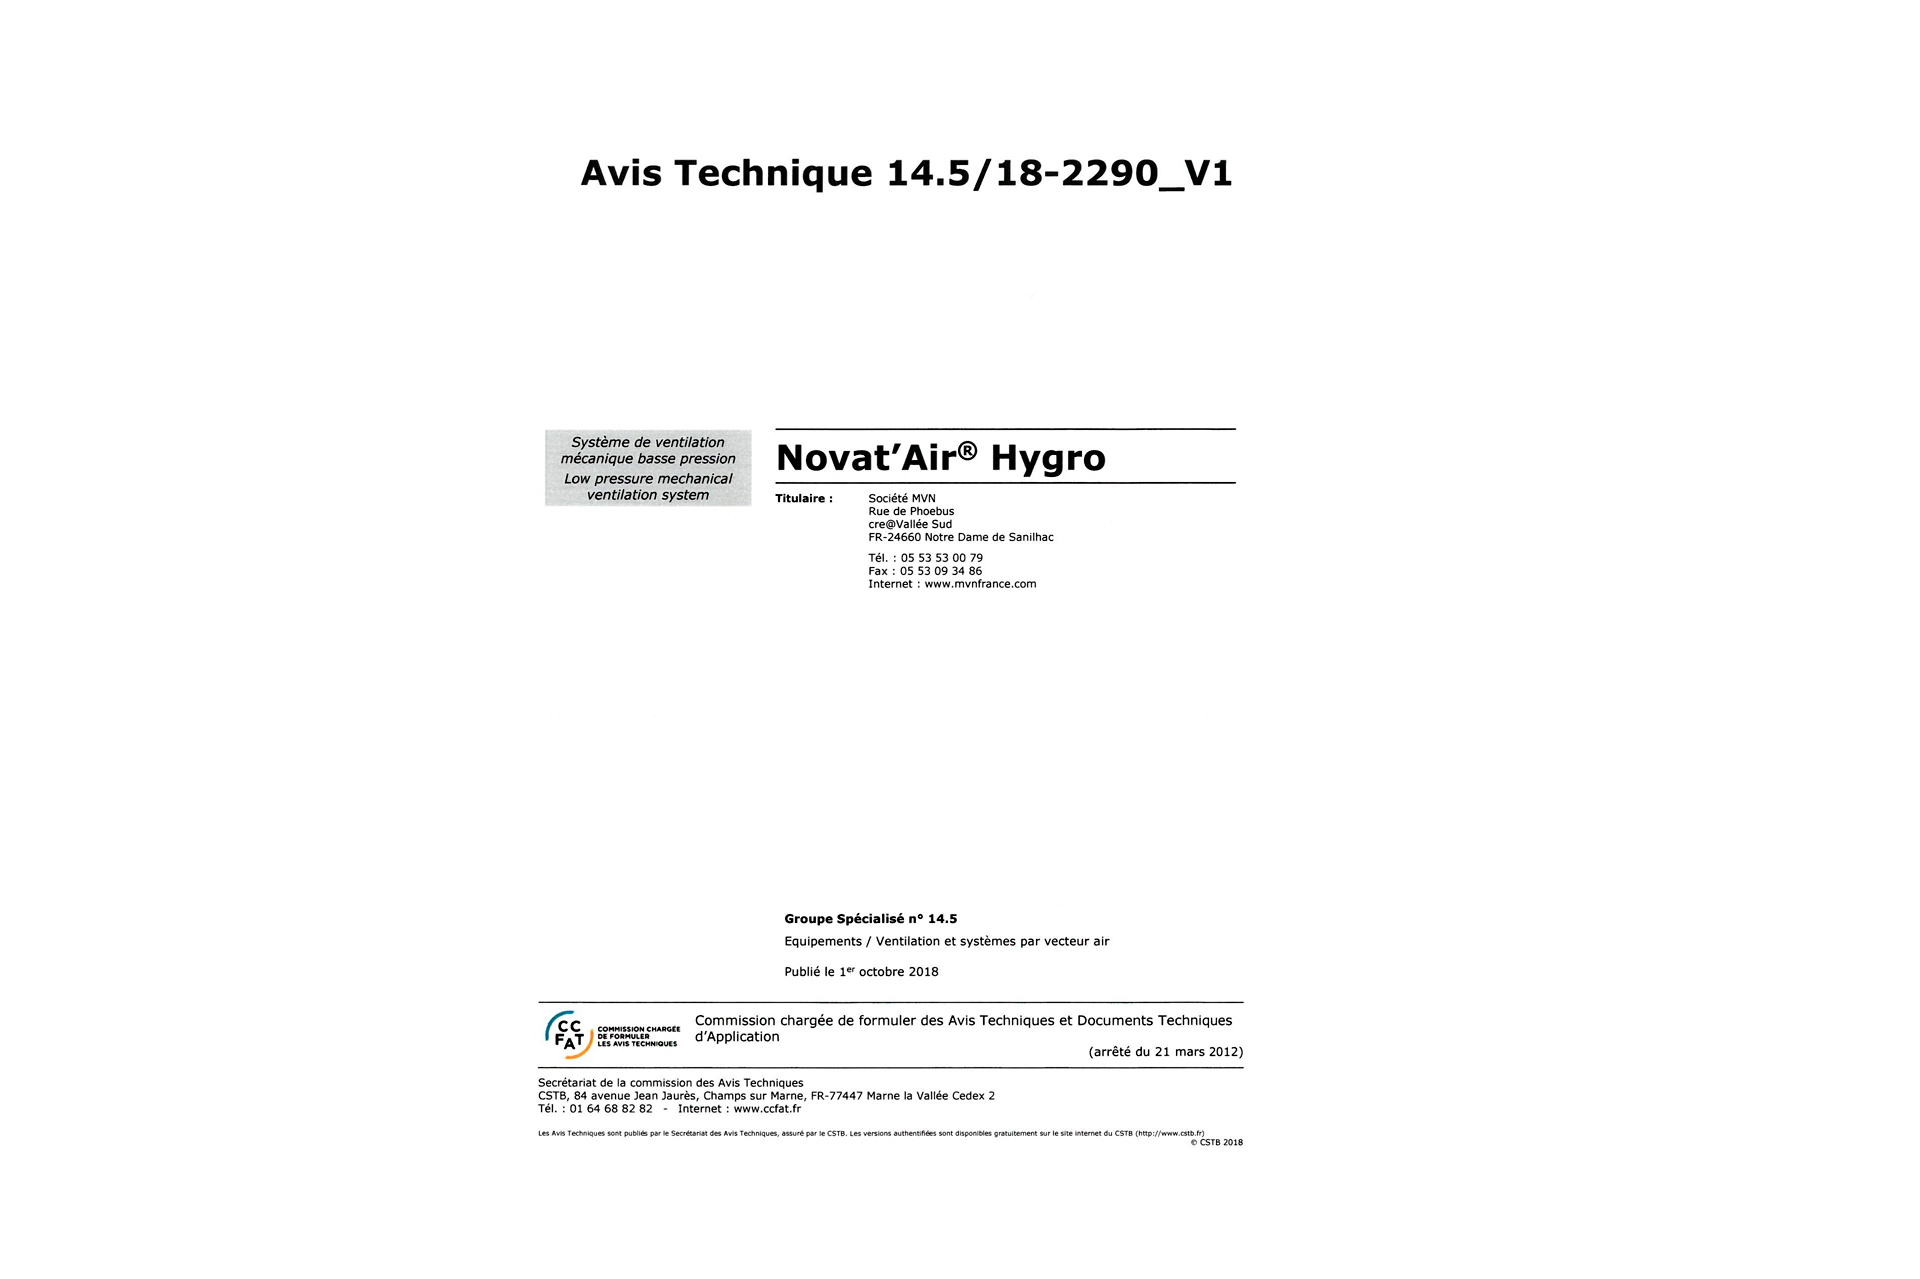 Avis technique 14.5/18-2290_V1 - Novat'Air Hygro